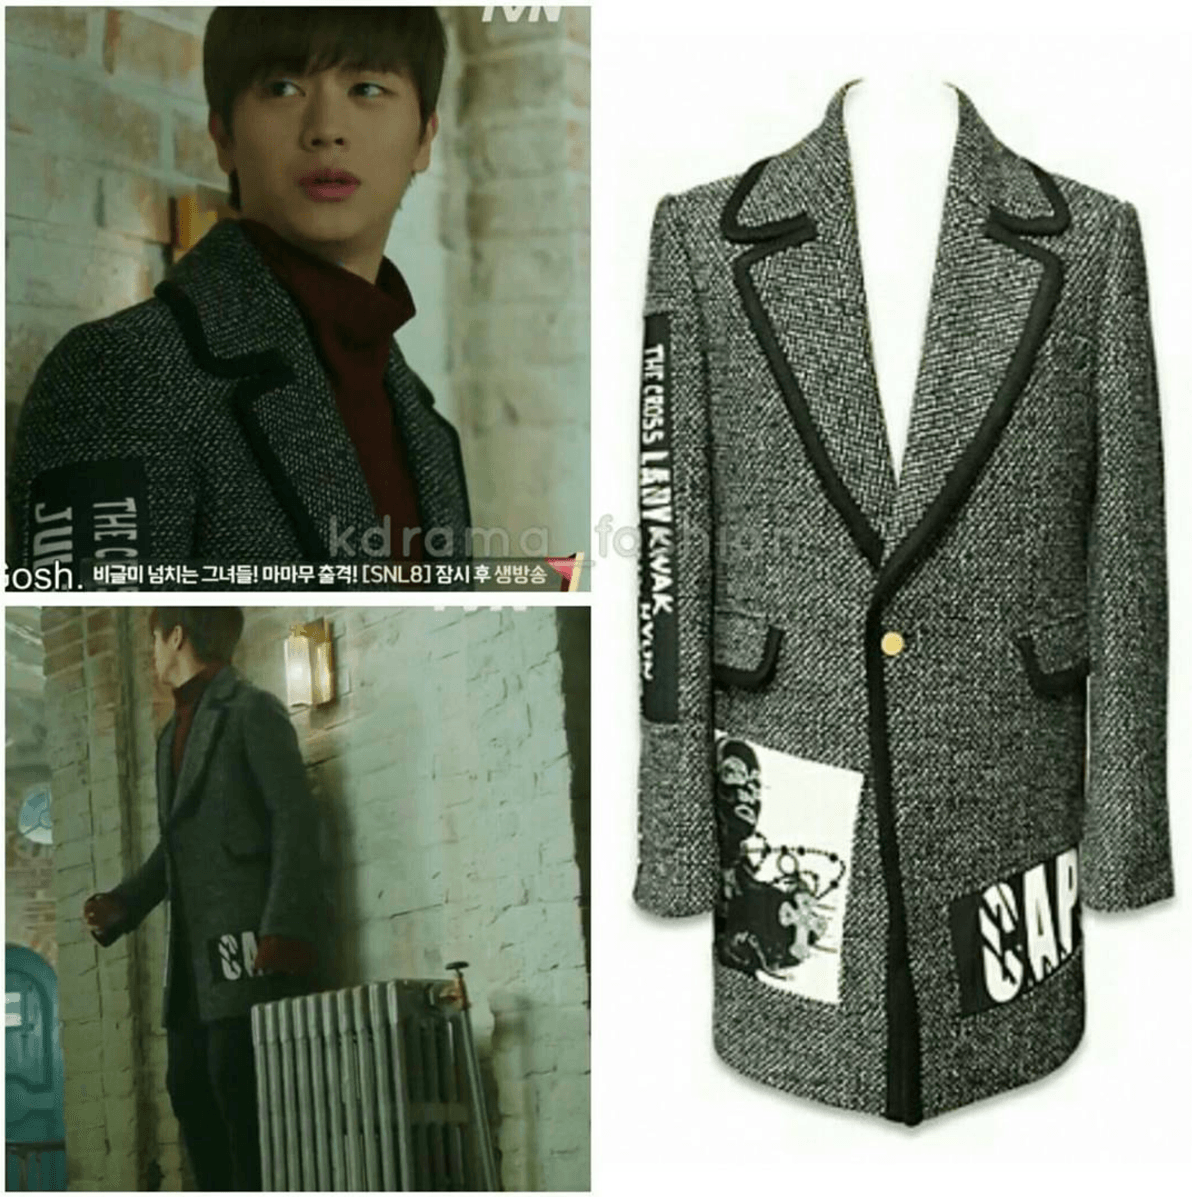 kwakhyunjoo-16fw-black-tweed-long-jacket